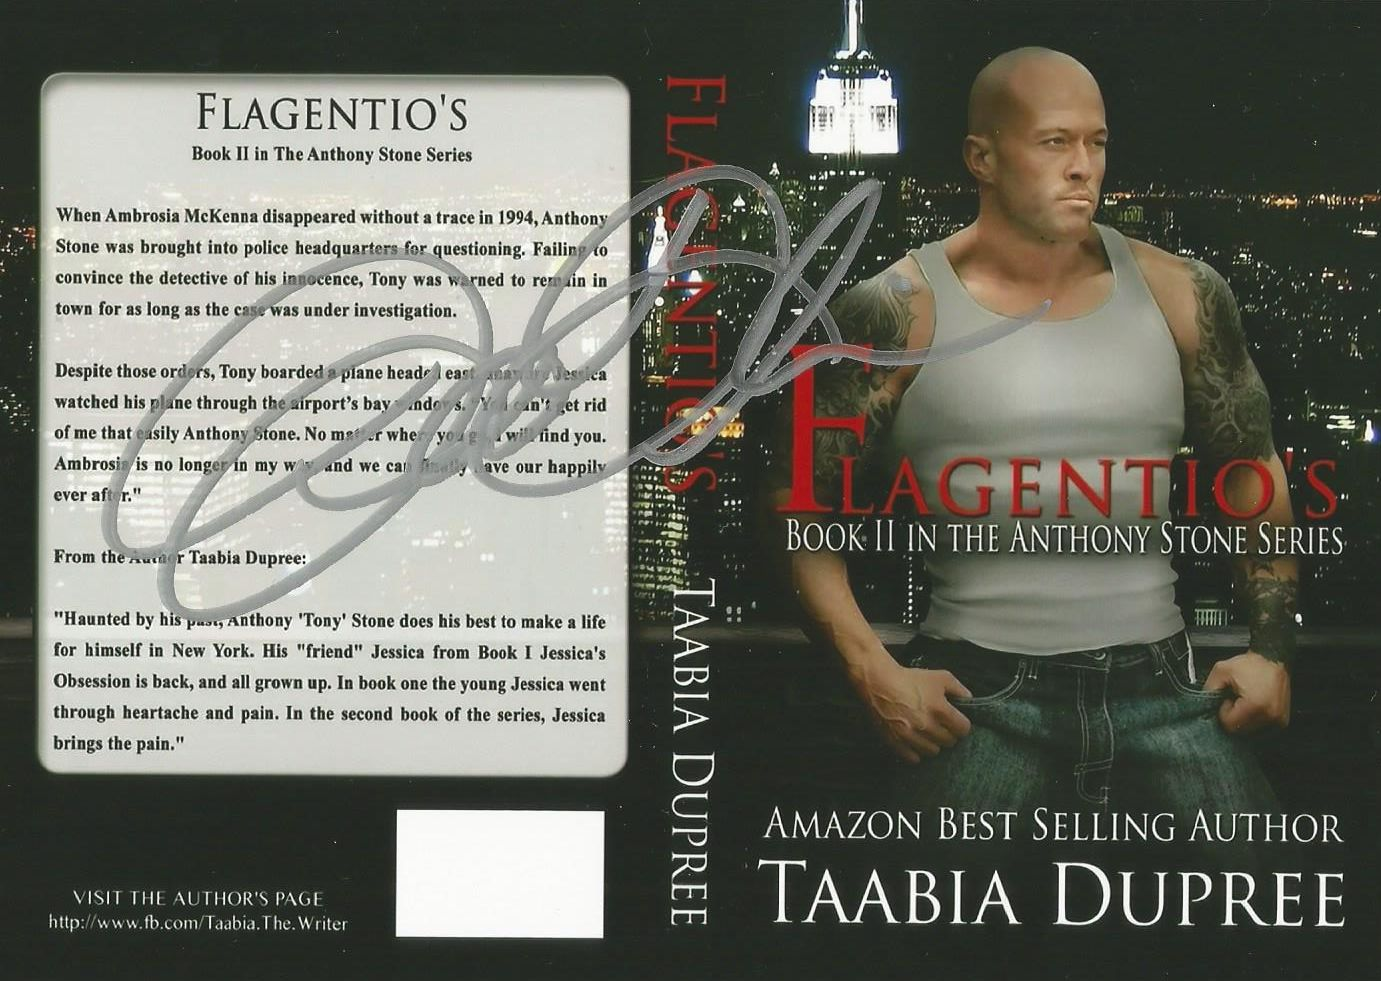 Tattoo Romance Cover Model John Quinlan Flagentio's Paperback Autograph #JohnQuinlan